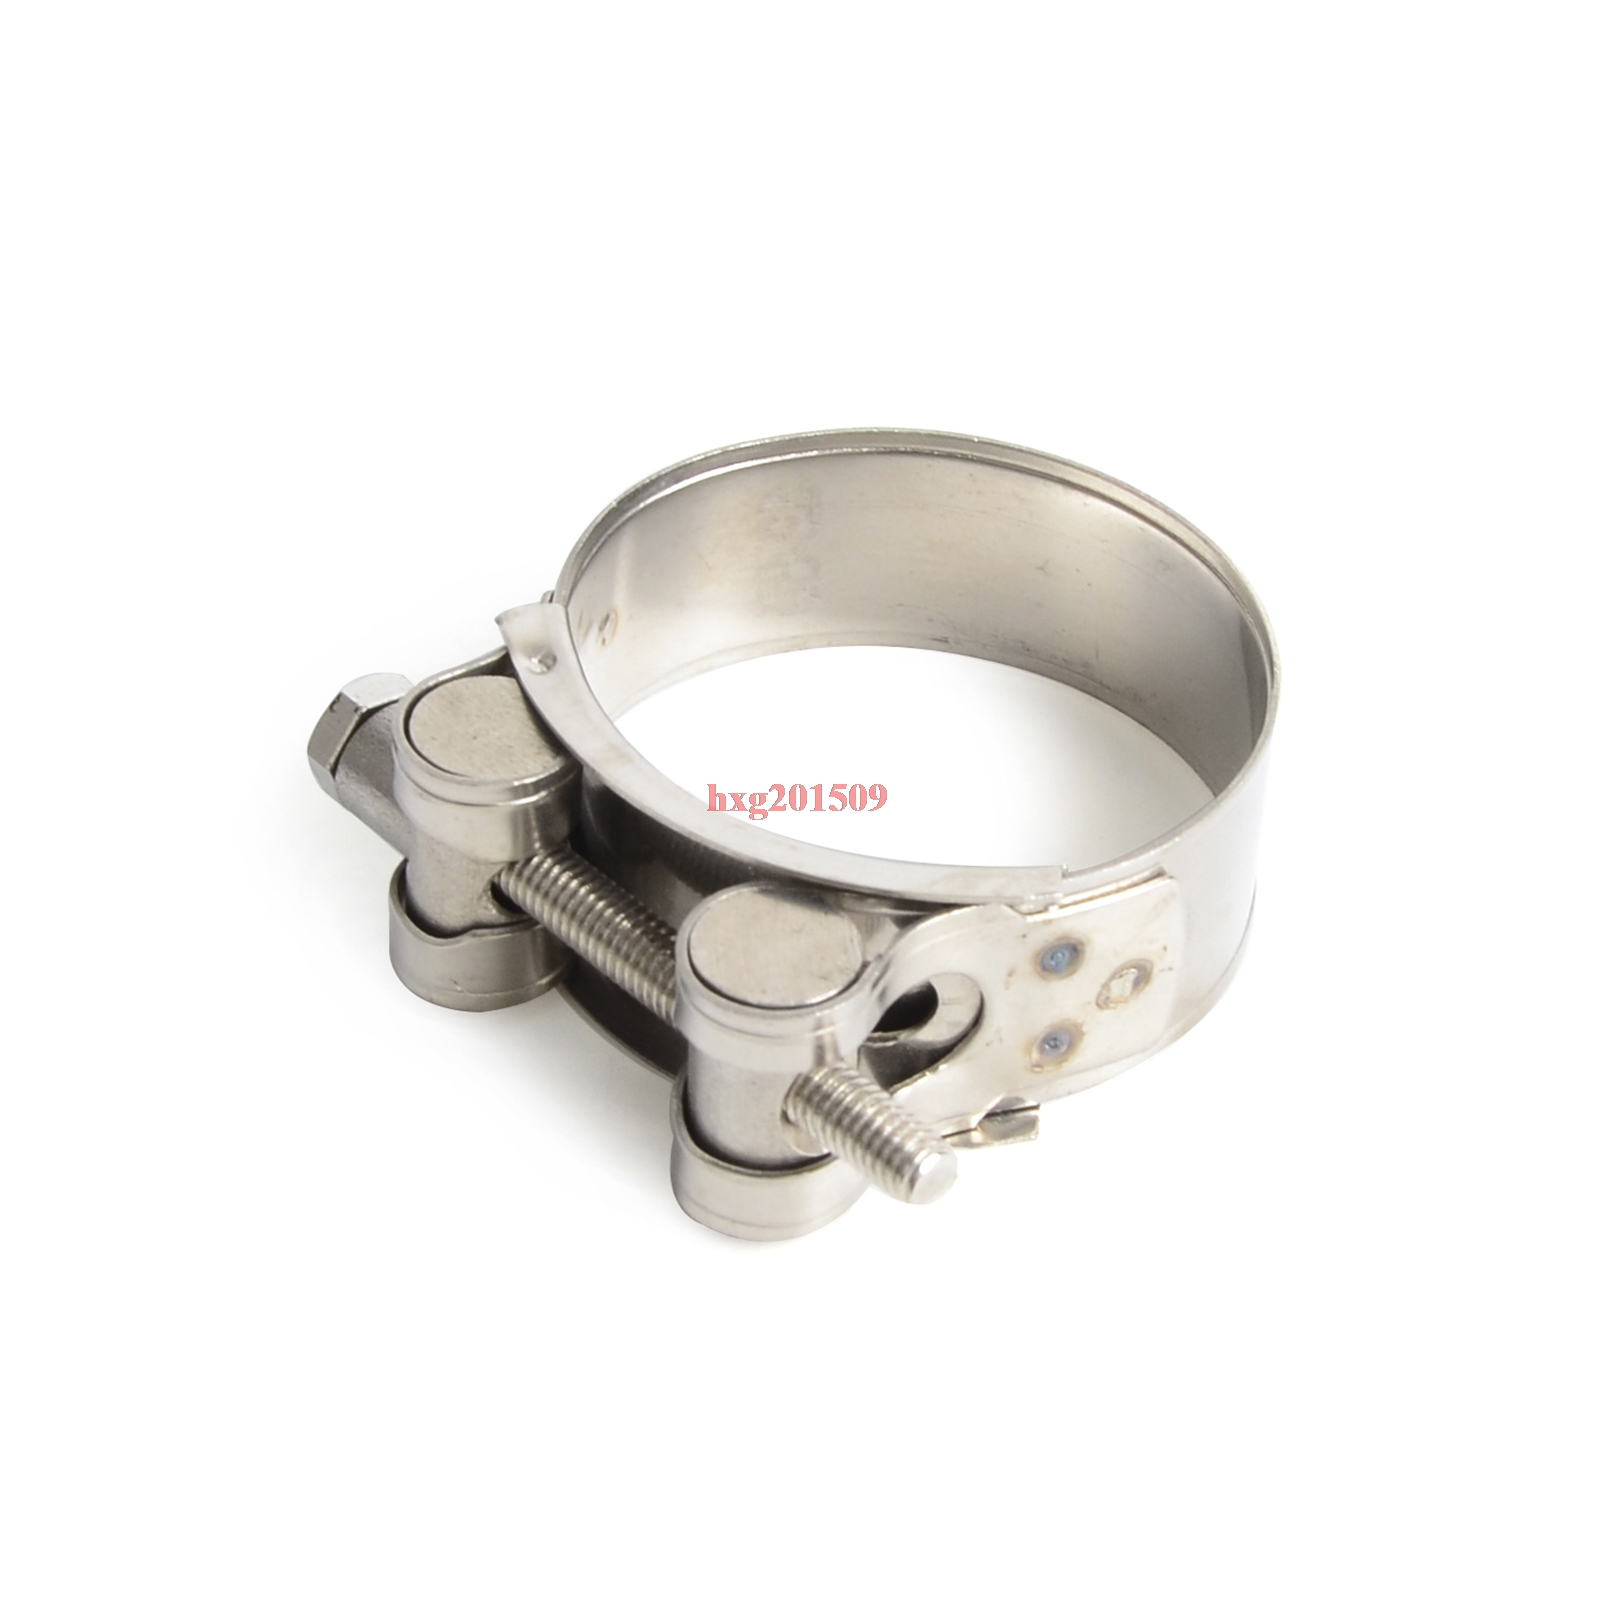 100% New Heavy Duty Stainless Steel Motorcycle Exhaust Banjo Clamp Clip 47mm-50mm For Scooter Dirt Bike ATV